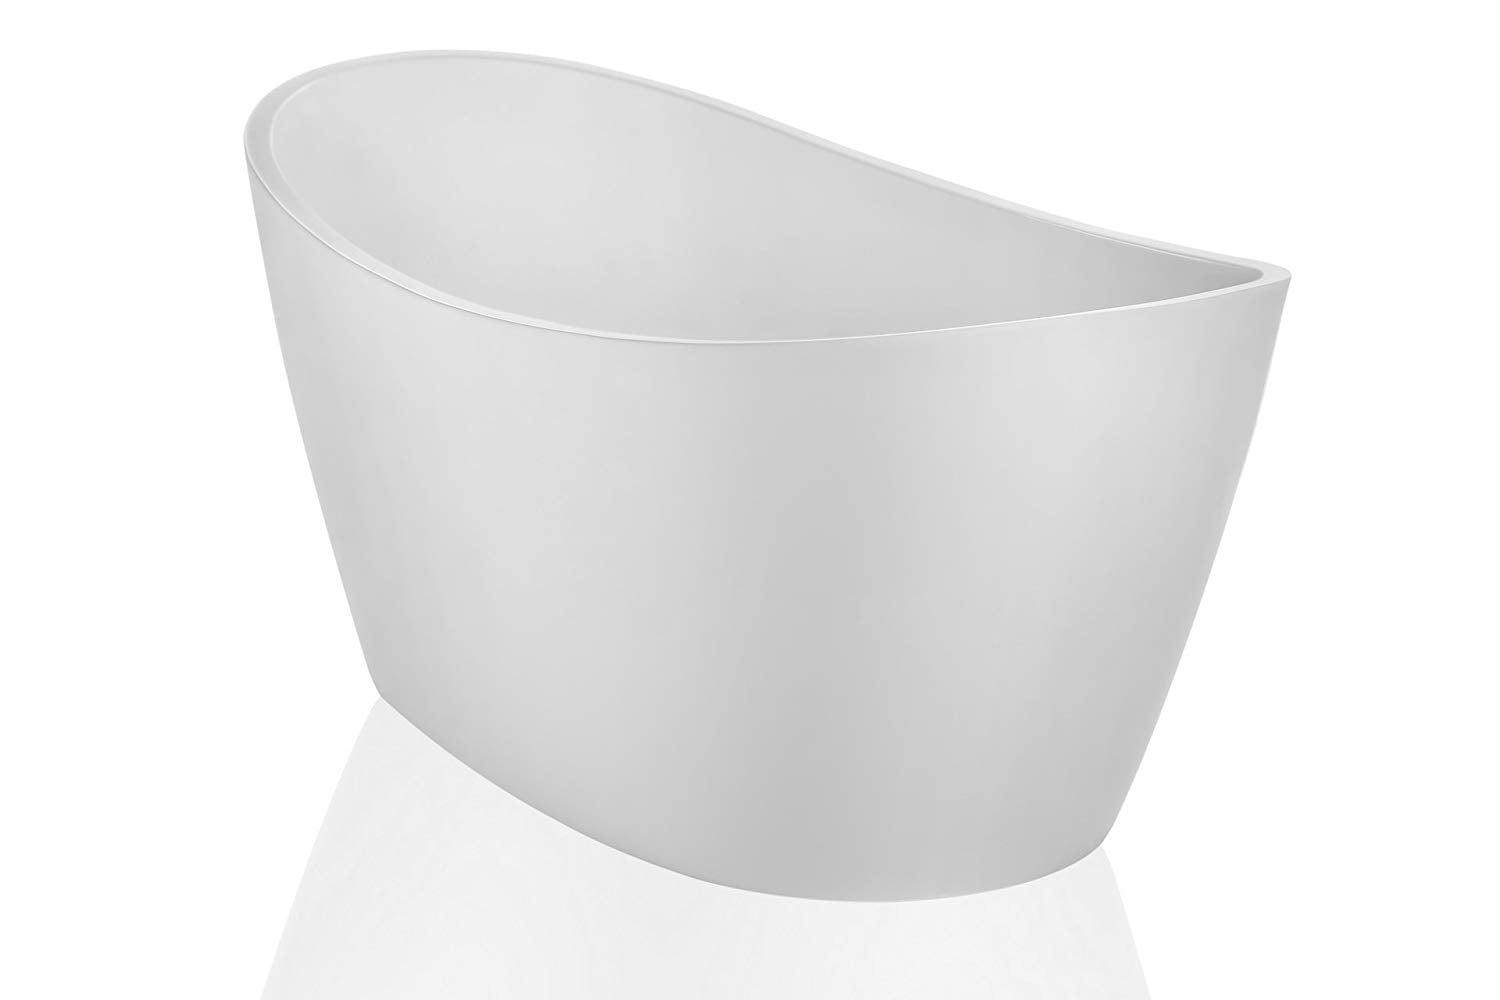 "Empava 67"" Made in USA Luxury Freestanding Bathtub Soaking SPA Flat Bottom Stand Alone Tub Modern Style with Custom Contemporary Design in White Acrylic EMPV-FT1518"